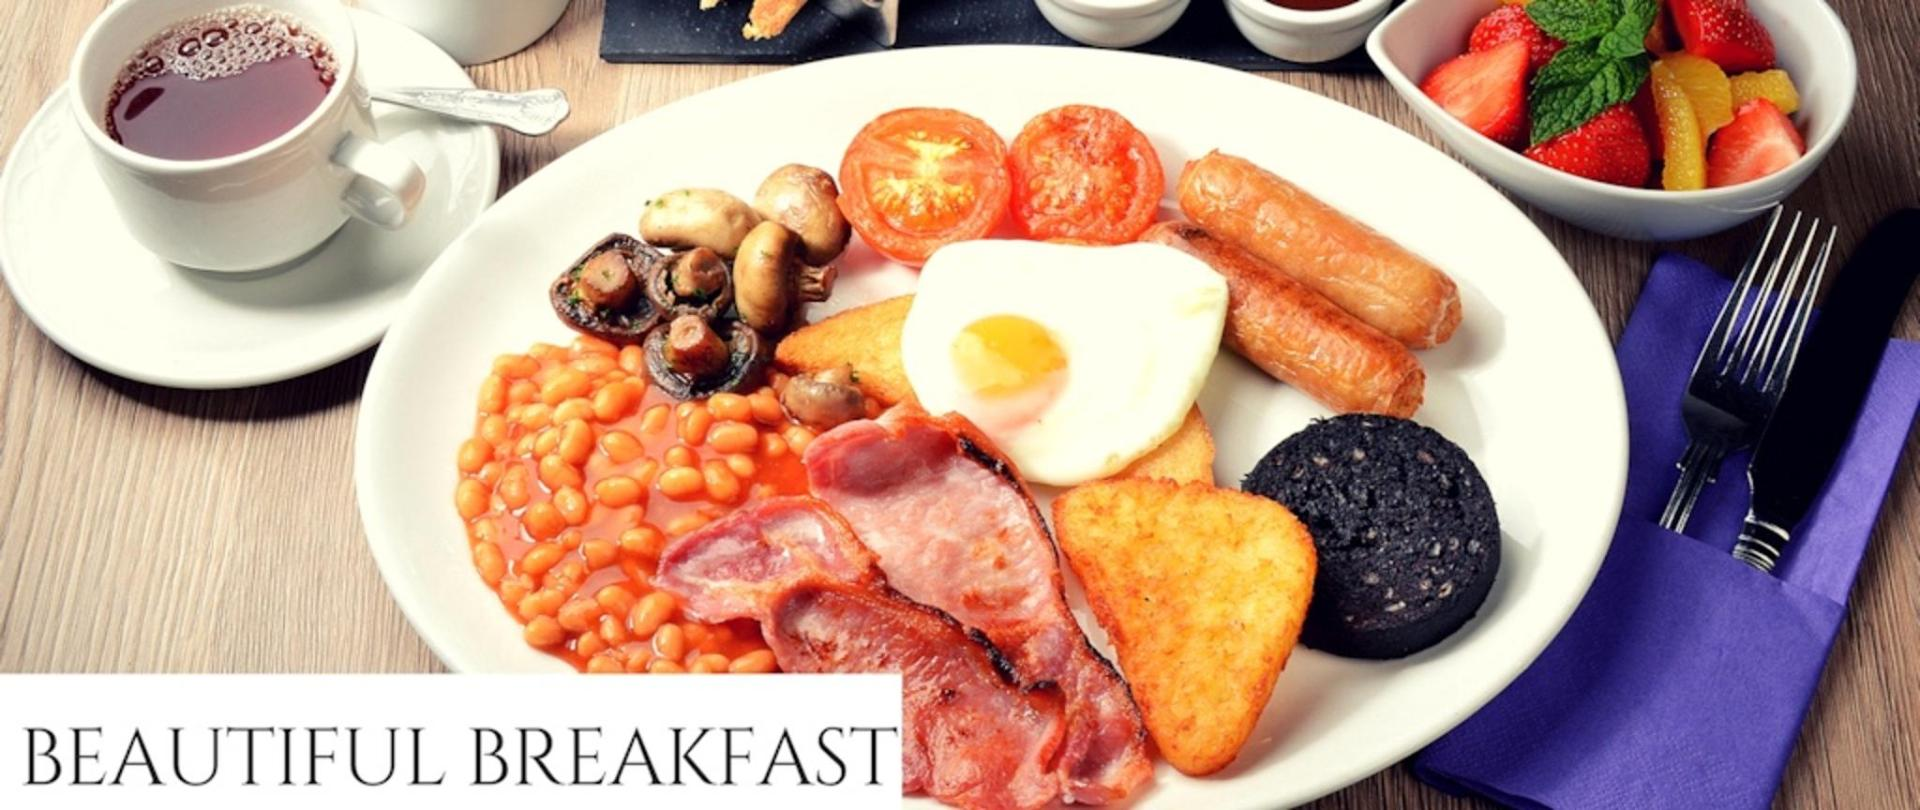 ruskin breakfast booking.com.jpg